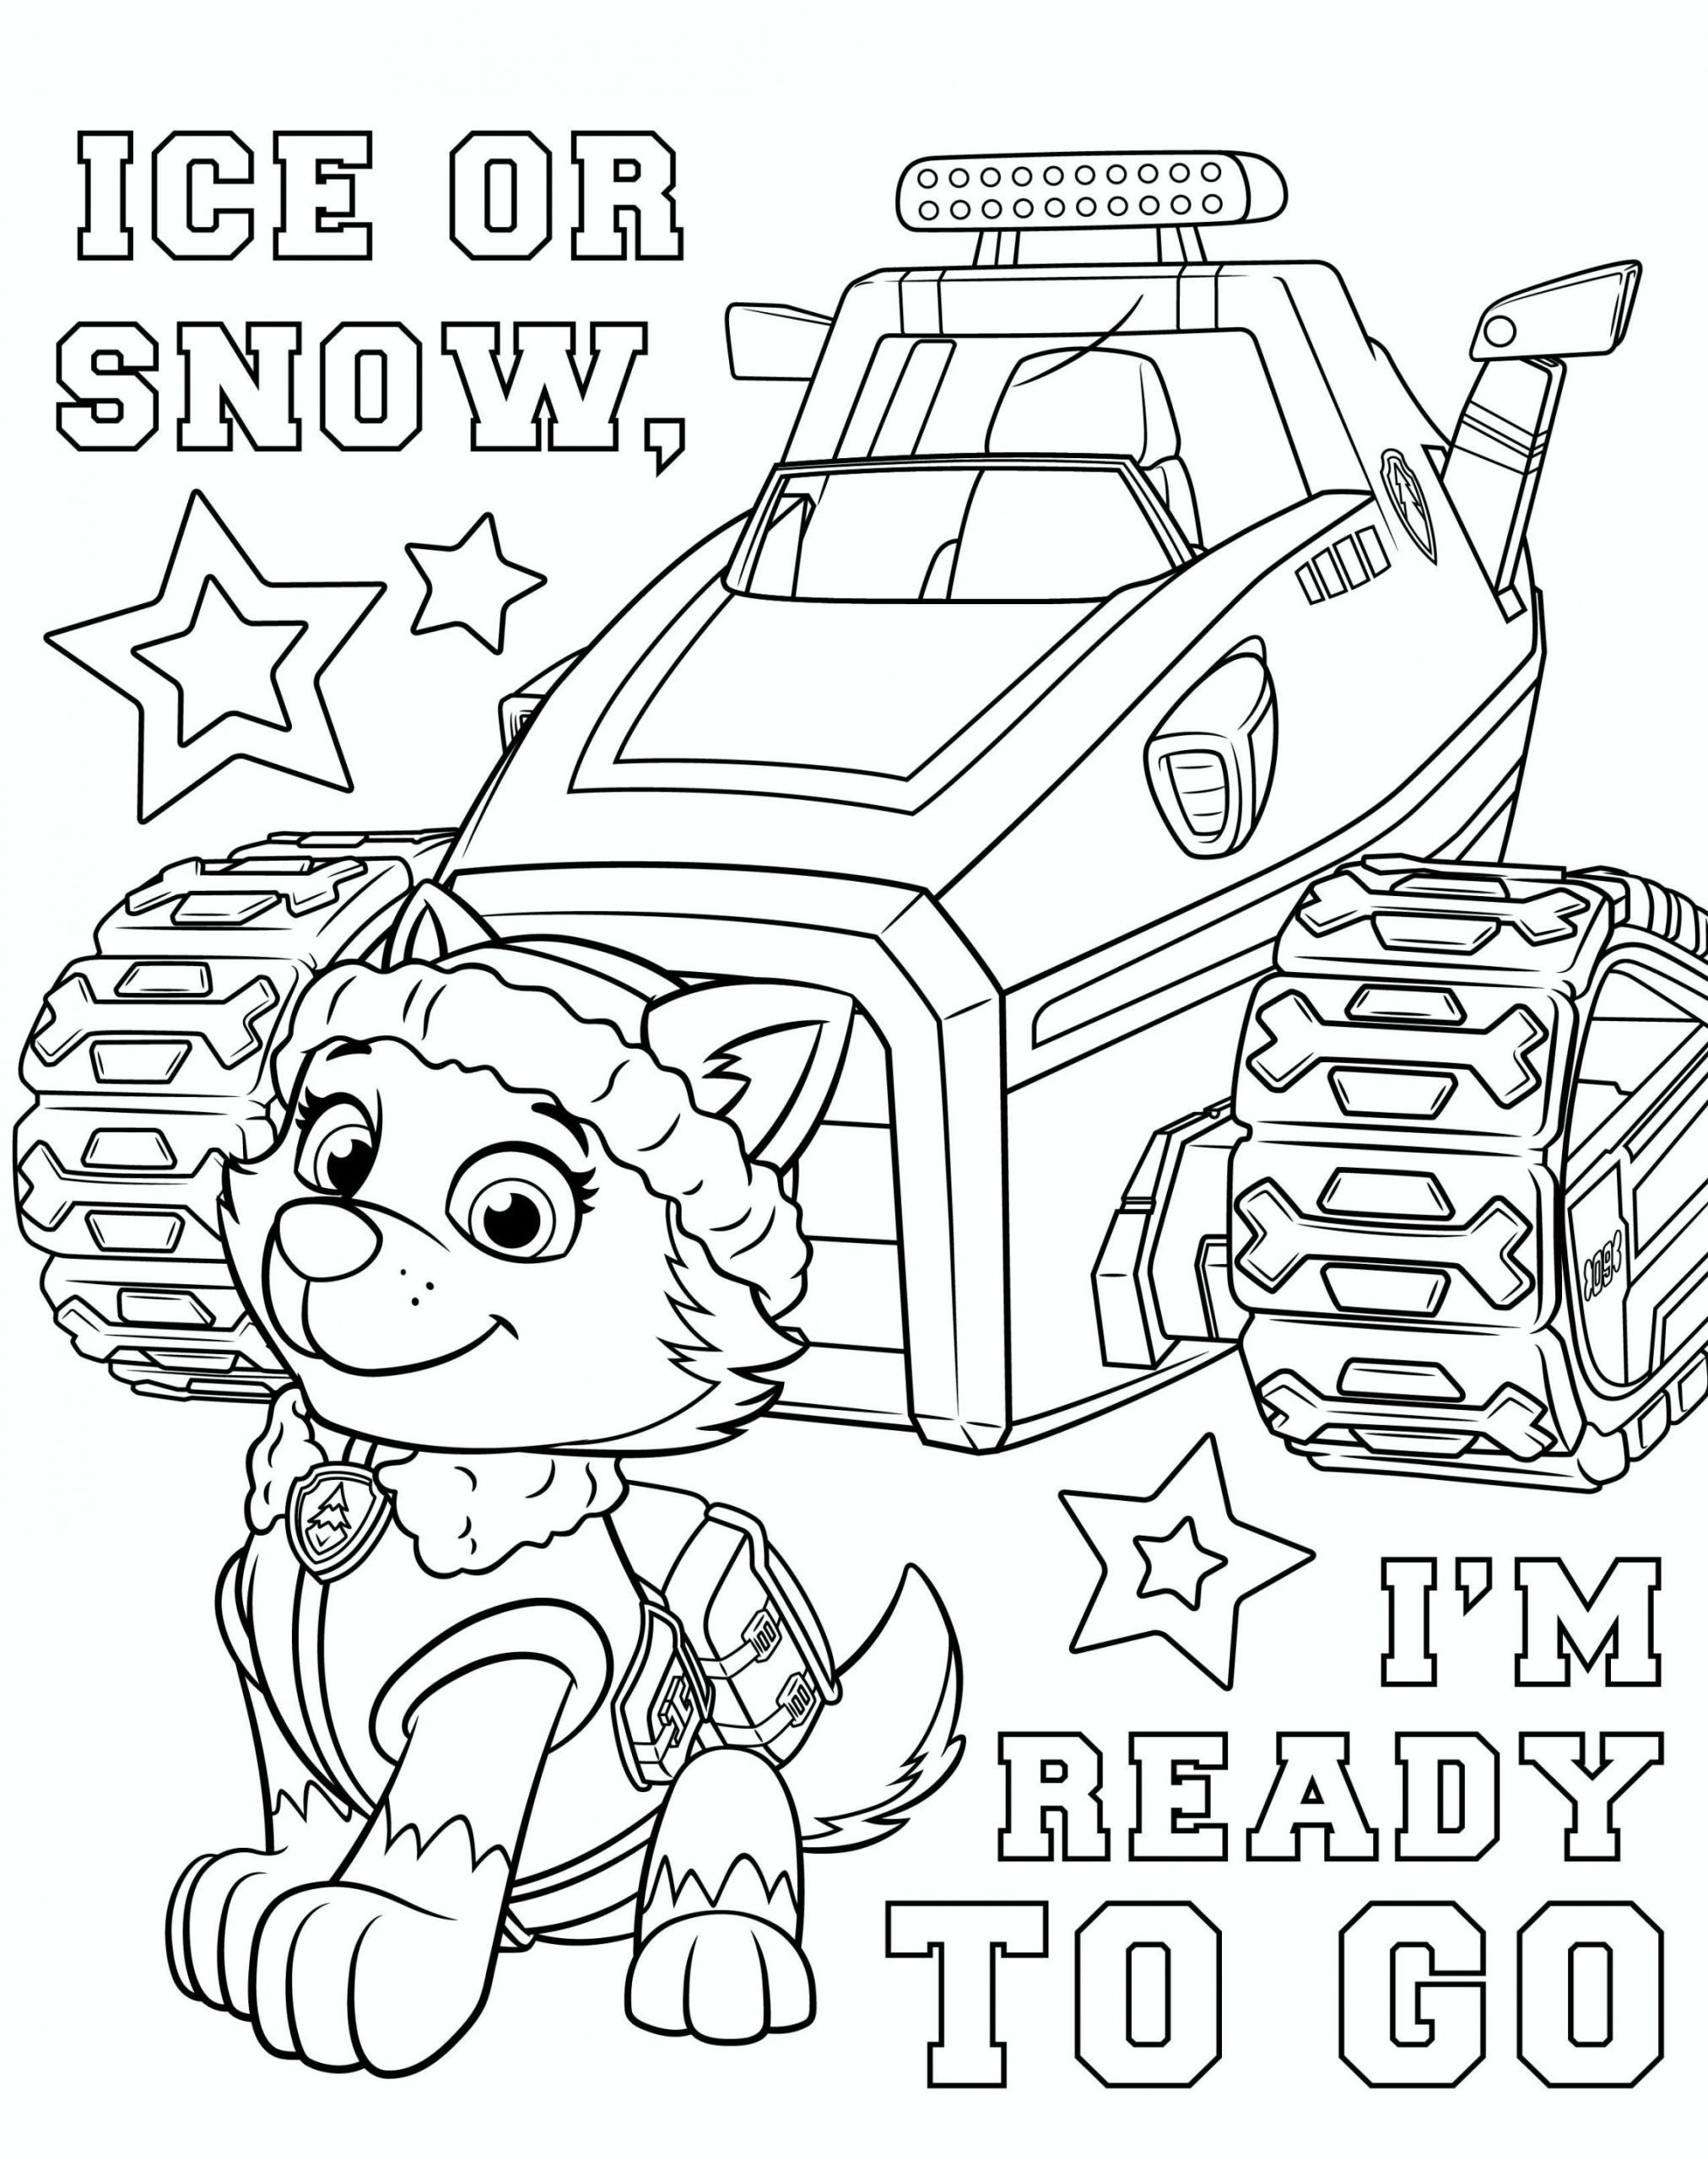 Everest Paw Patrol Coloring Page Youngandtae Com In 2020 Paw Patrol Coloring Pages Paw Patrol Coloring Cartoon Coloring Pages